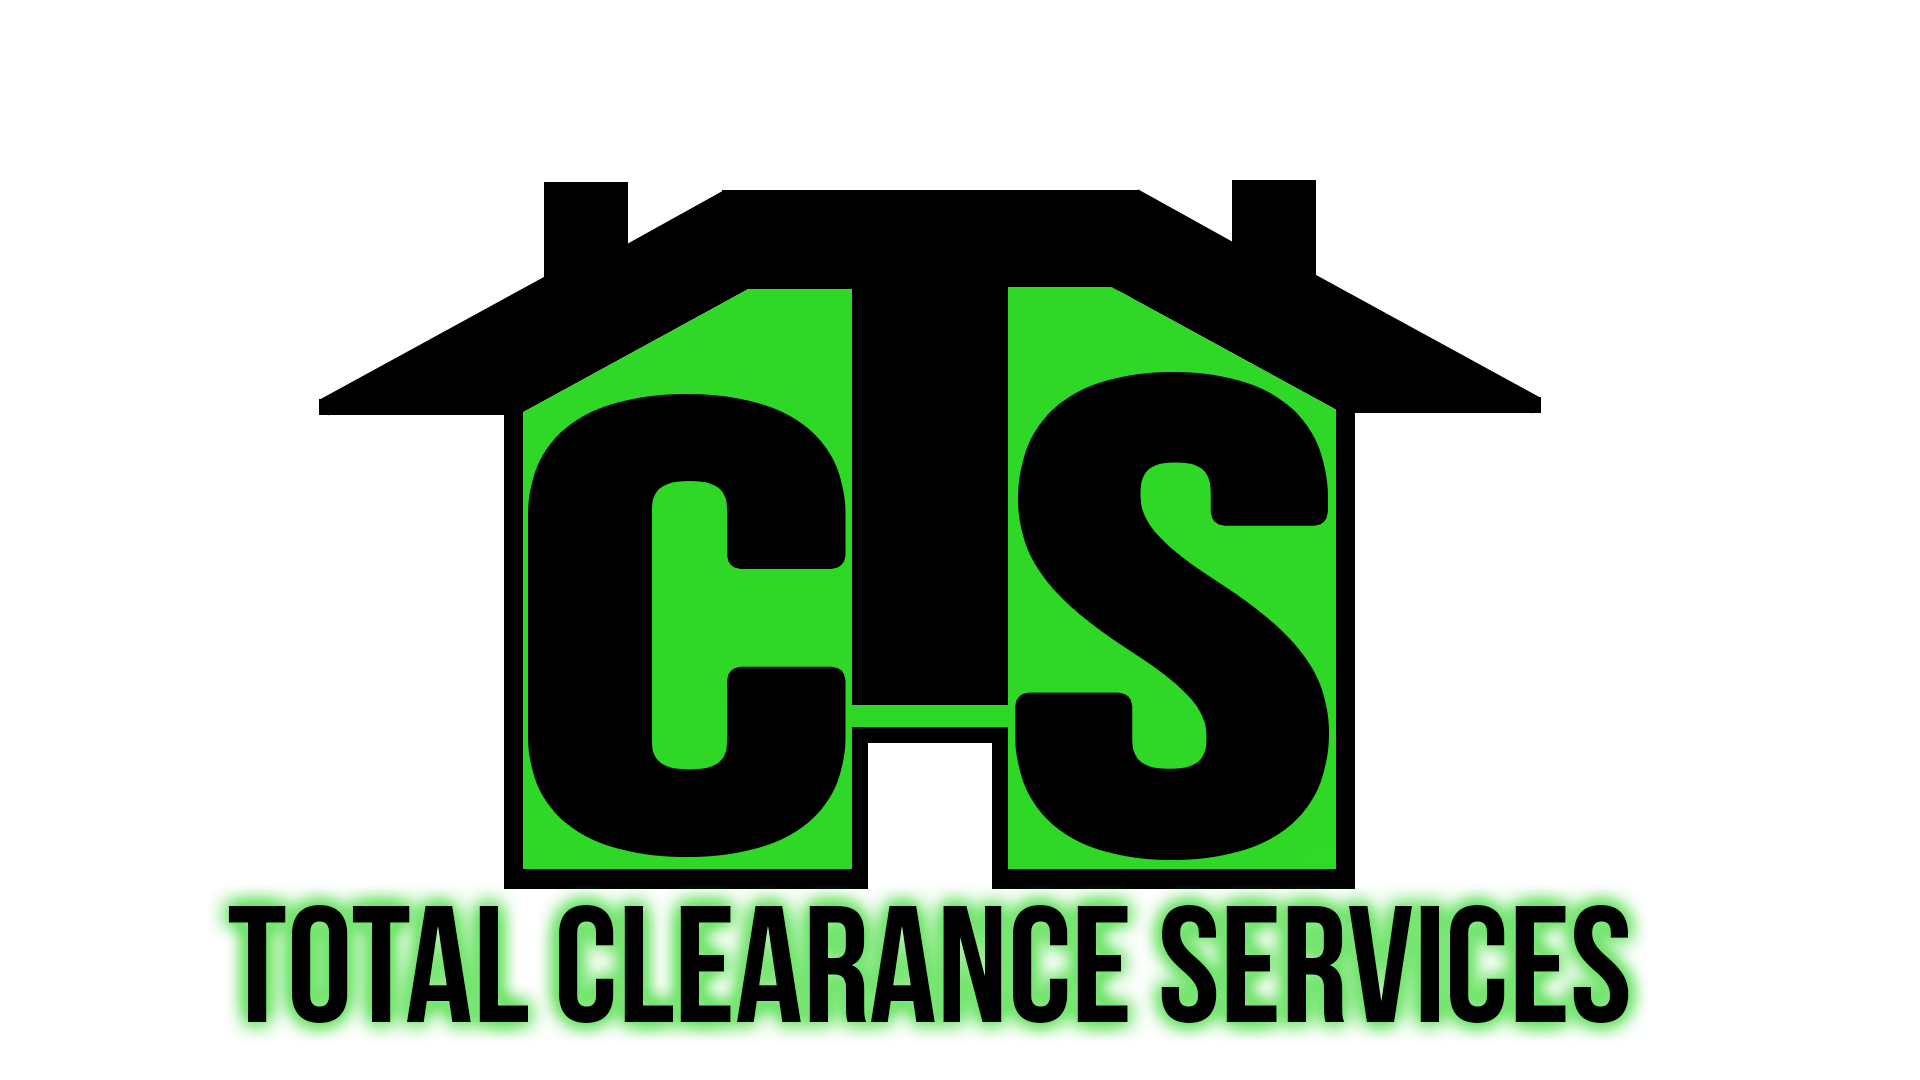 Total Clearance Services